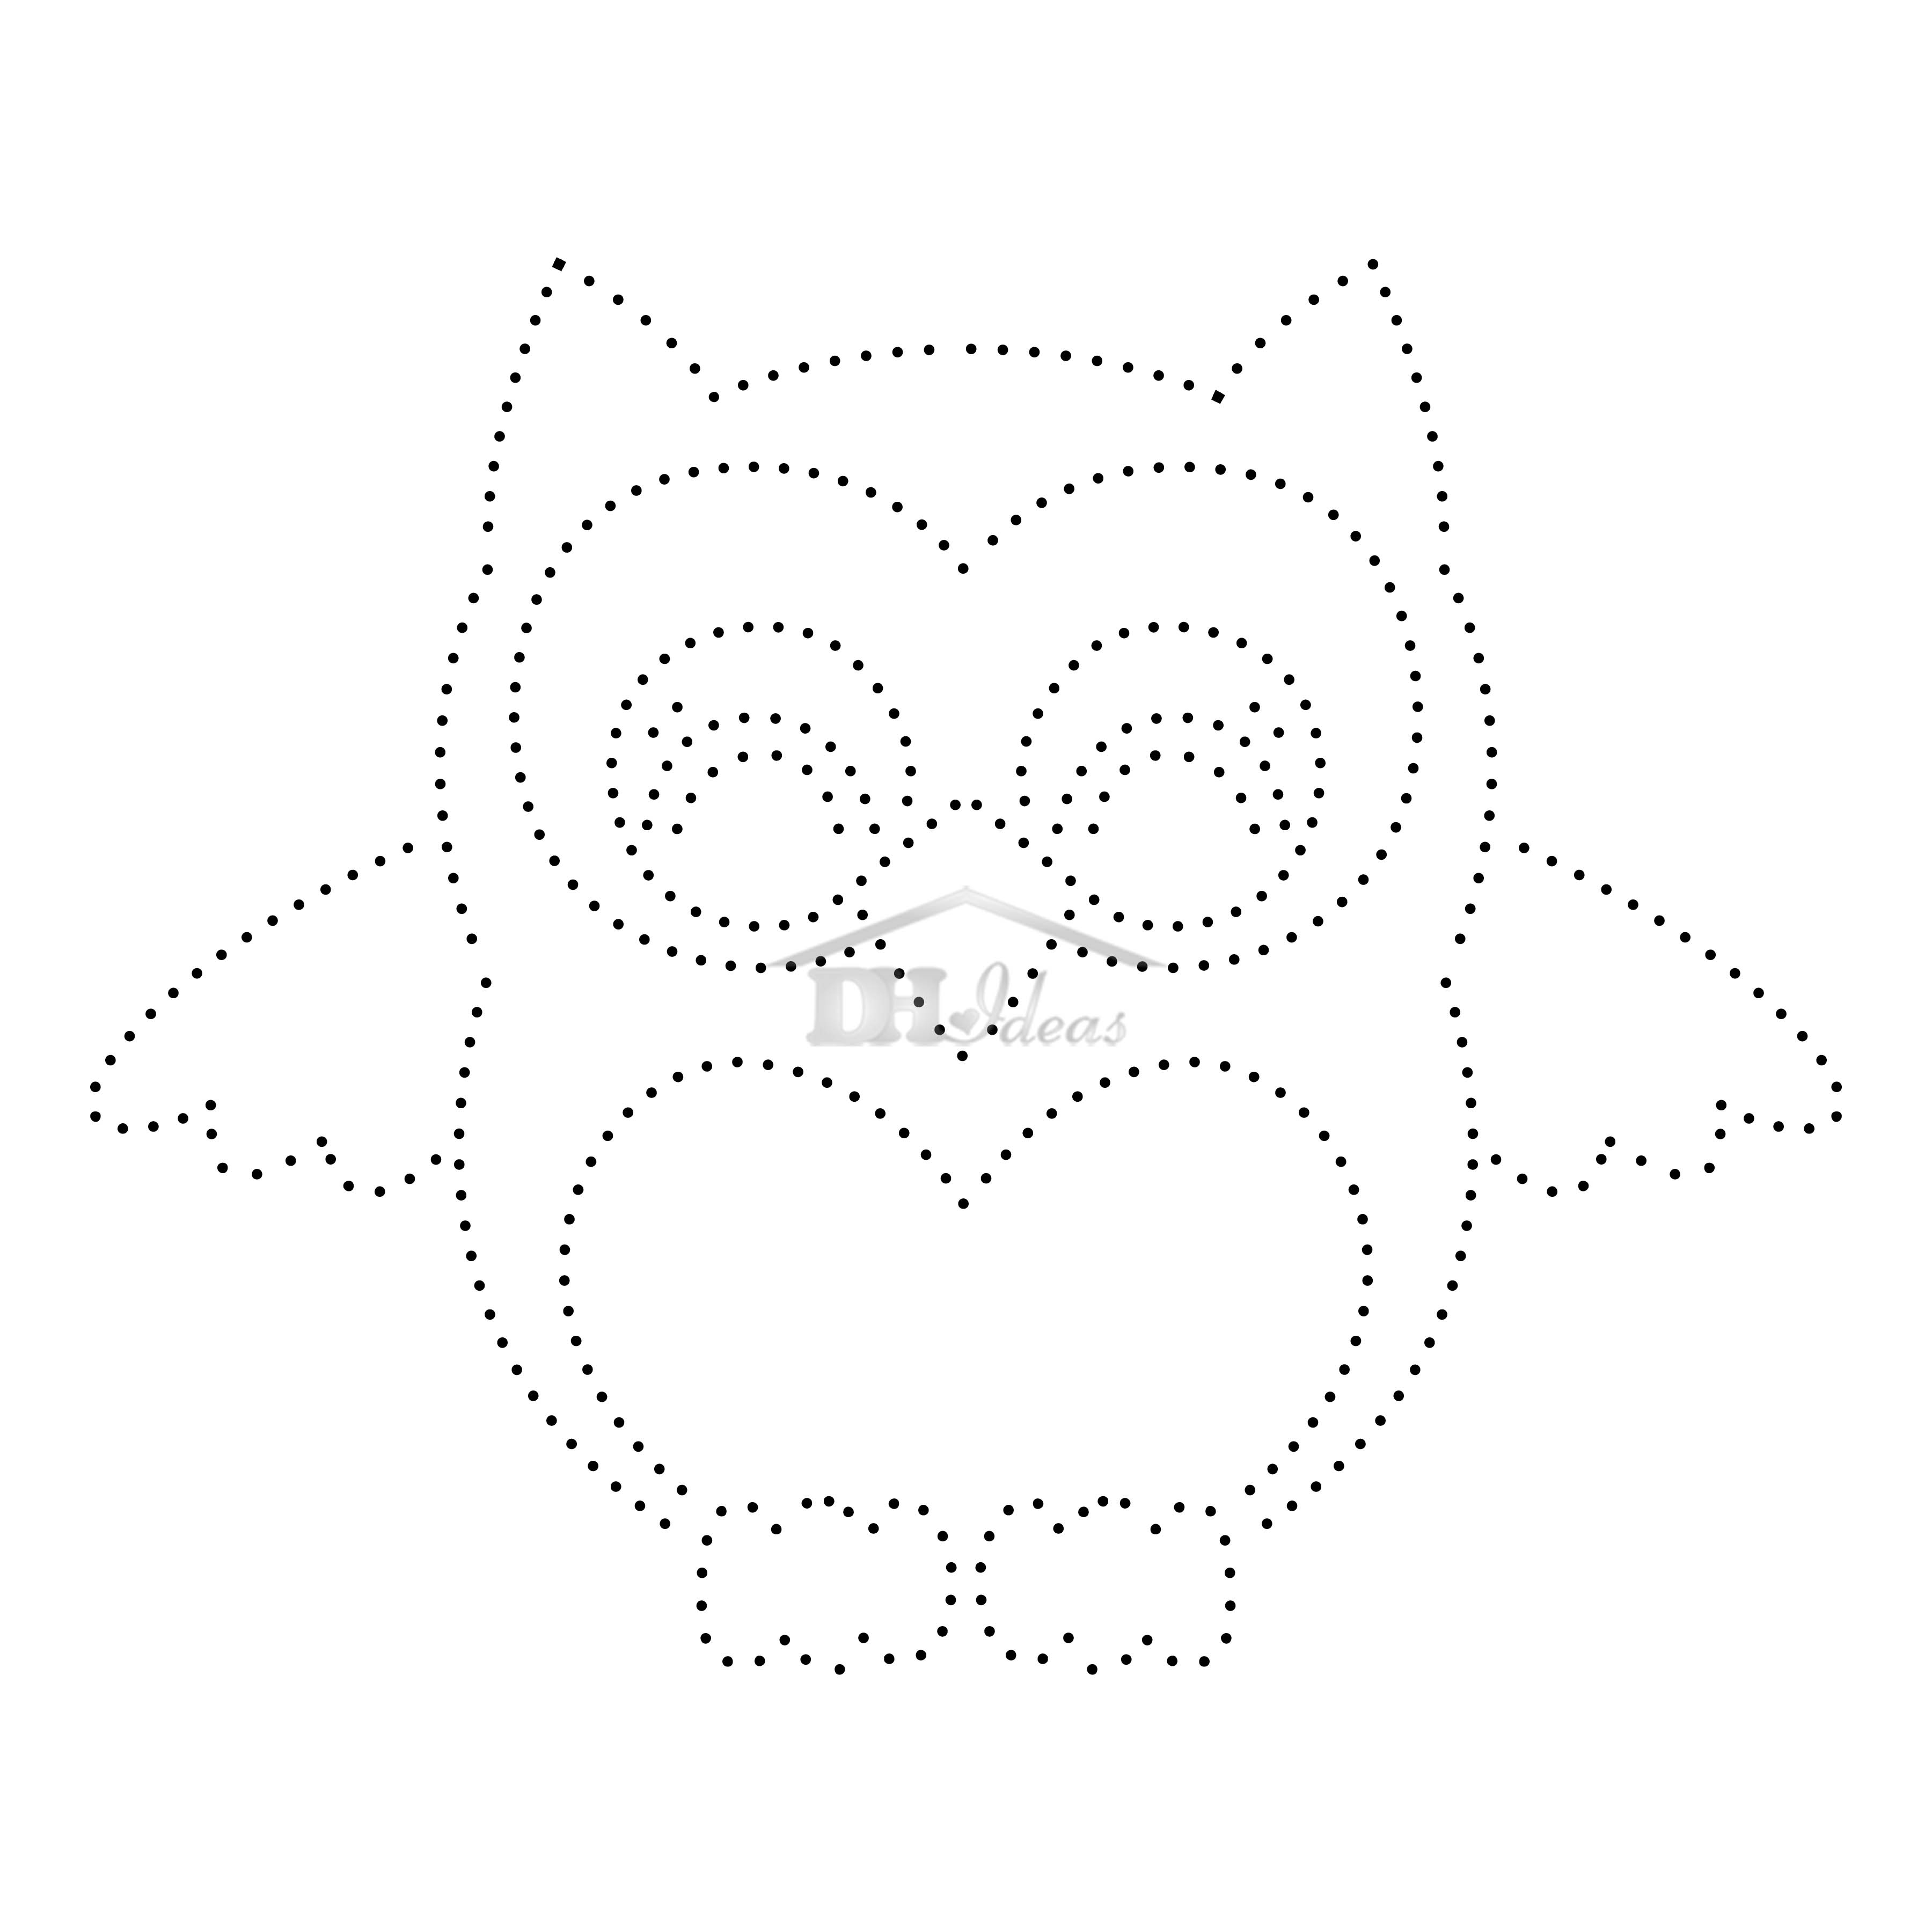 30 Free Printable String Art Patterns (Direct Download) - Free Printable String Art Patterns With Instructions